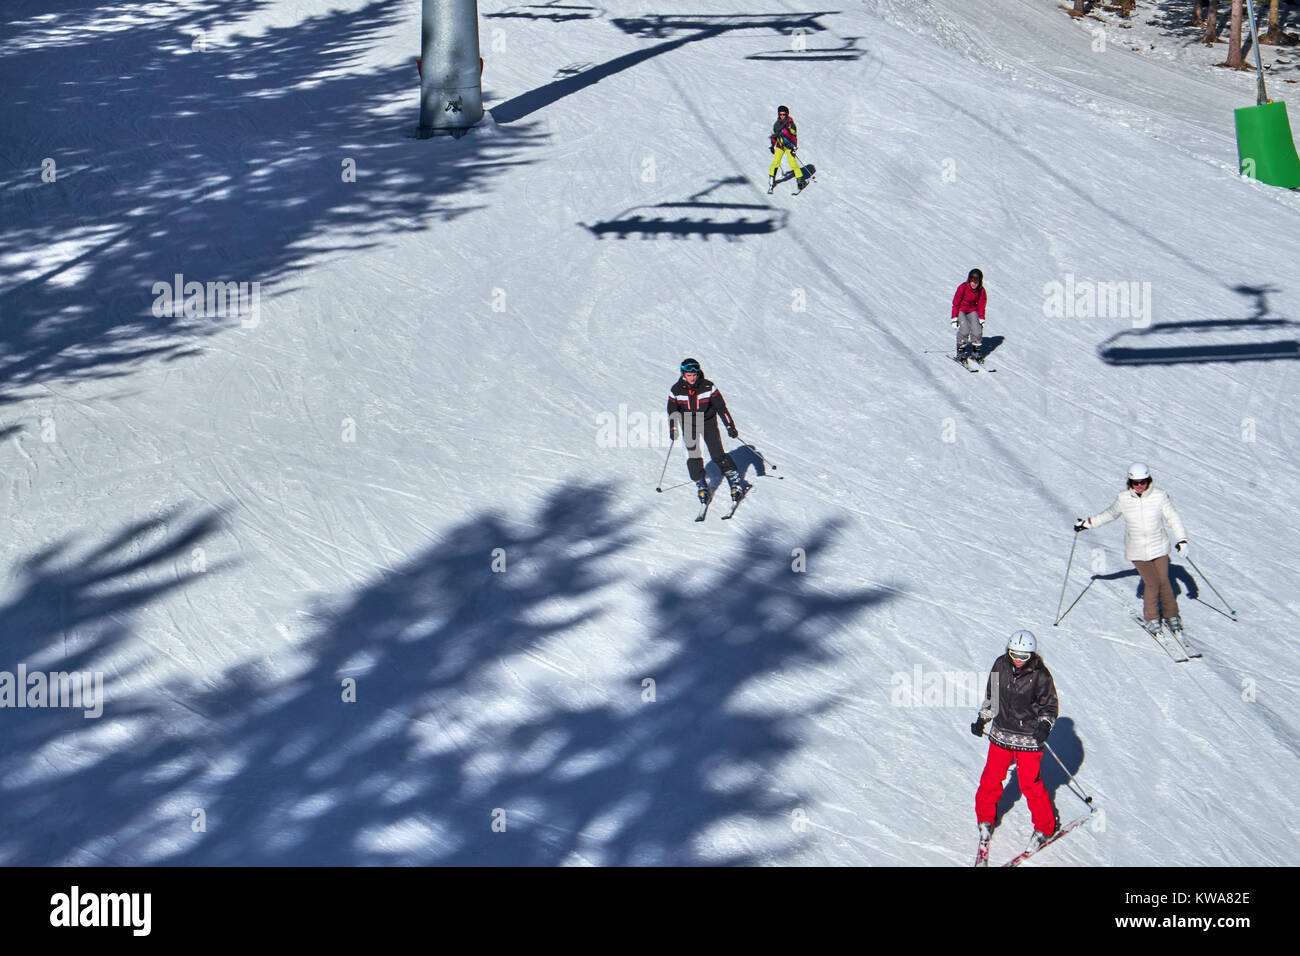 WINTERBERG, GERMANY - FEBRUARY 14, 2017: Group of skiers running under a chairlift at Ski Carousel Winterberg - Stock Image